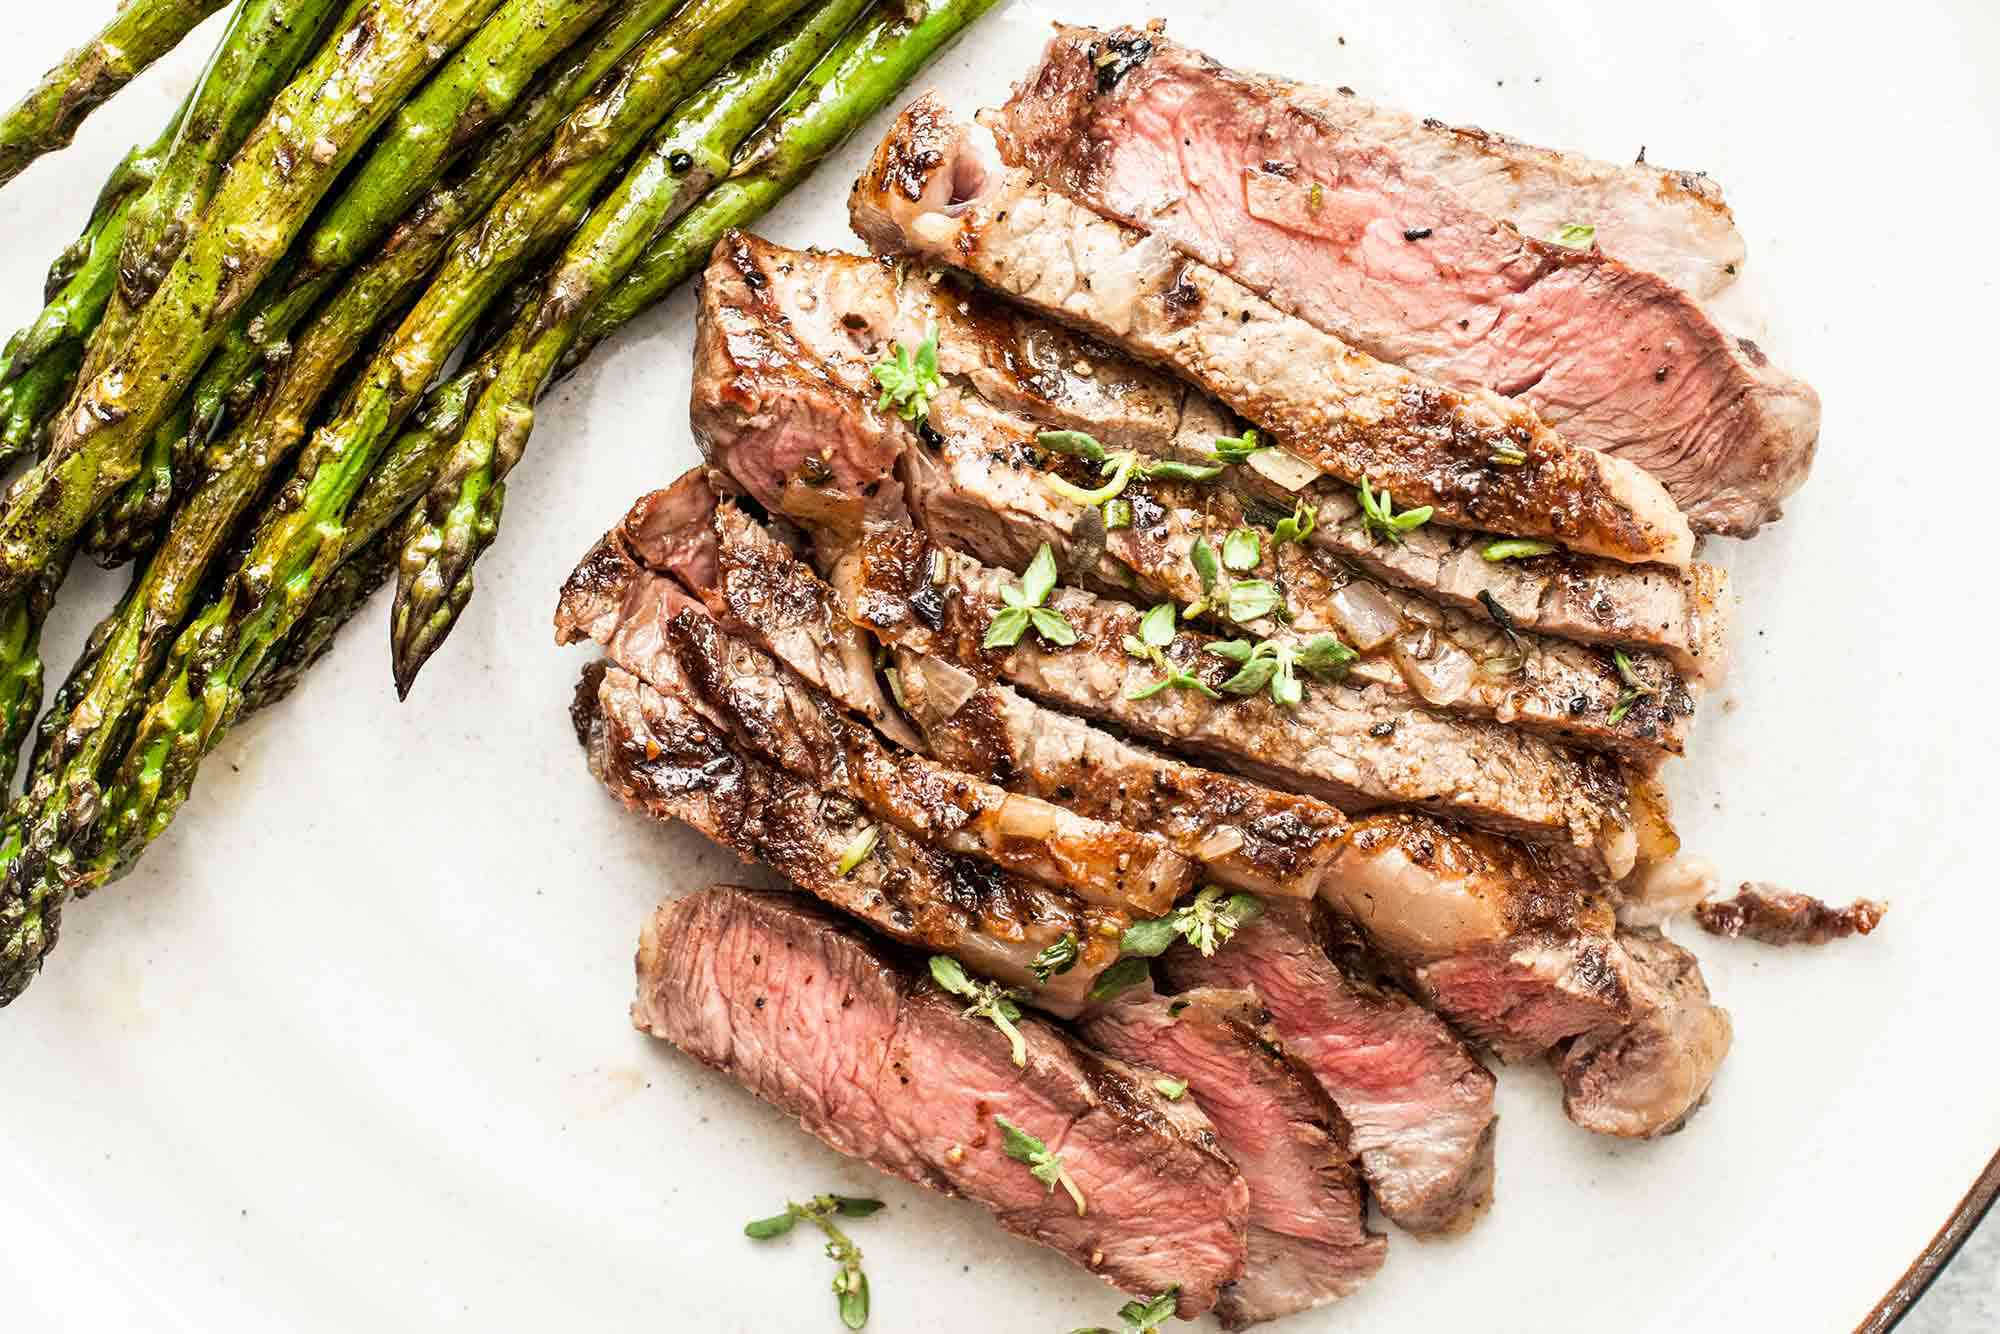 Grilled Ribeye Steak on a platter with asparagus